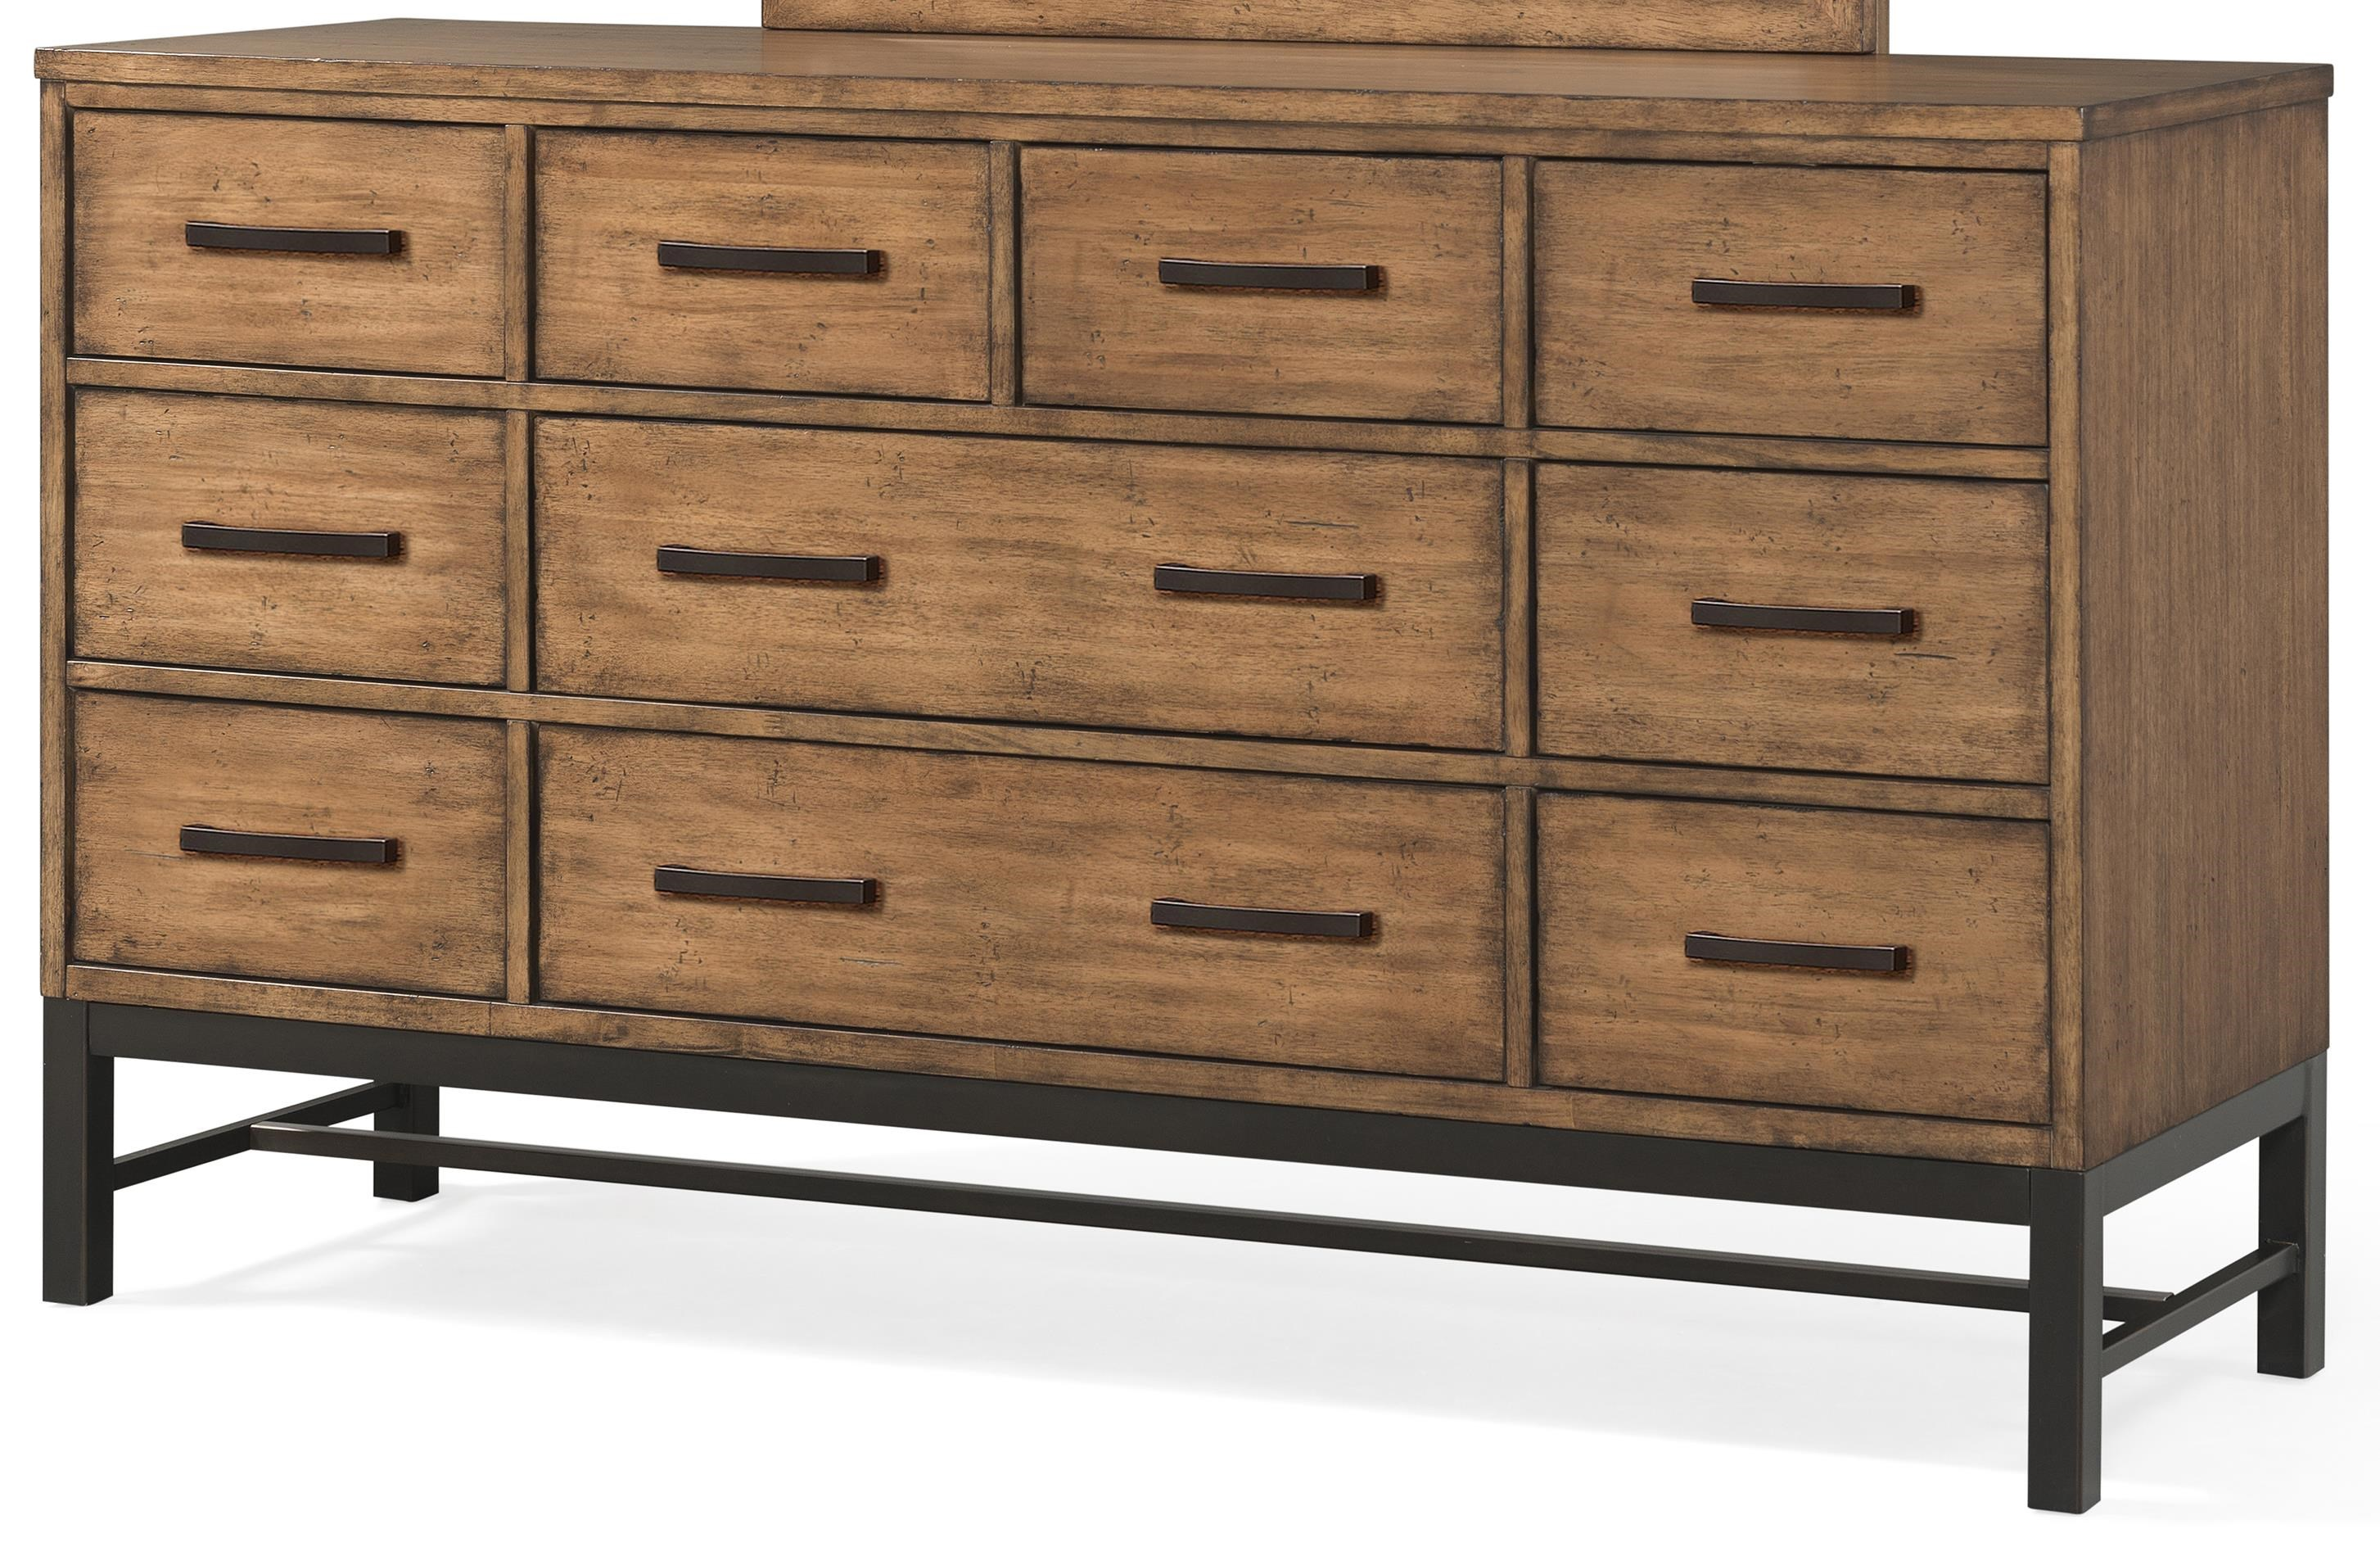 oldbrick furniture. this item is on display in our showroom or stocked warehouse however fabrics color the picture may vary from actual product store oldbrick furniture c